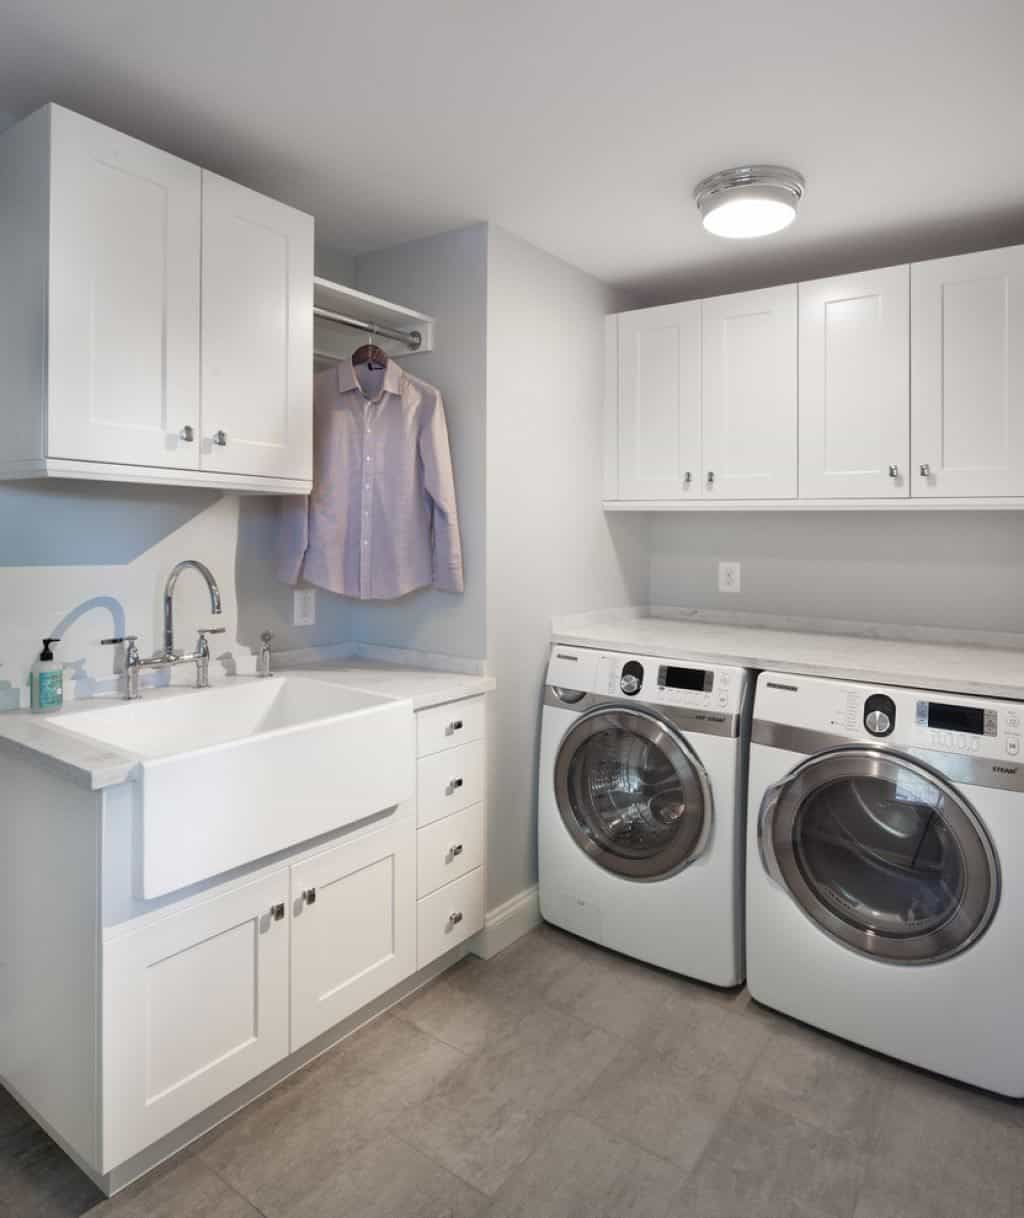 Affordable And Useful Laundry Sink Laundry Room Sink Laundry